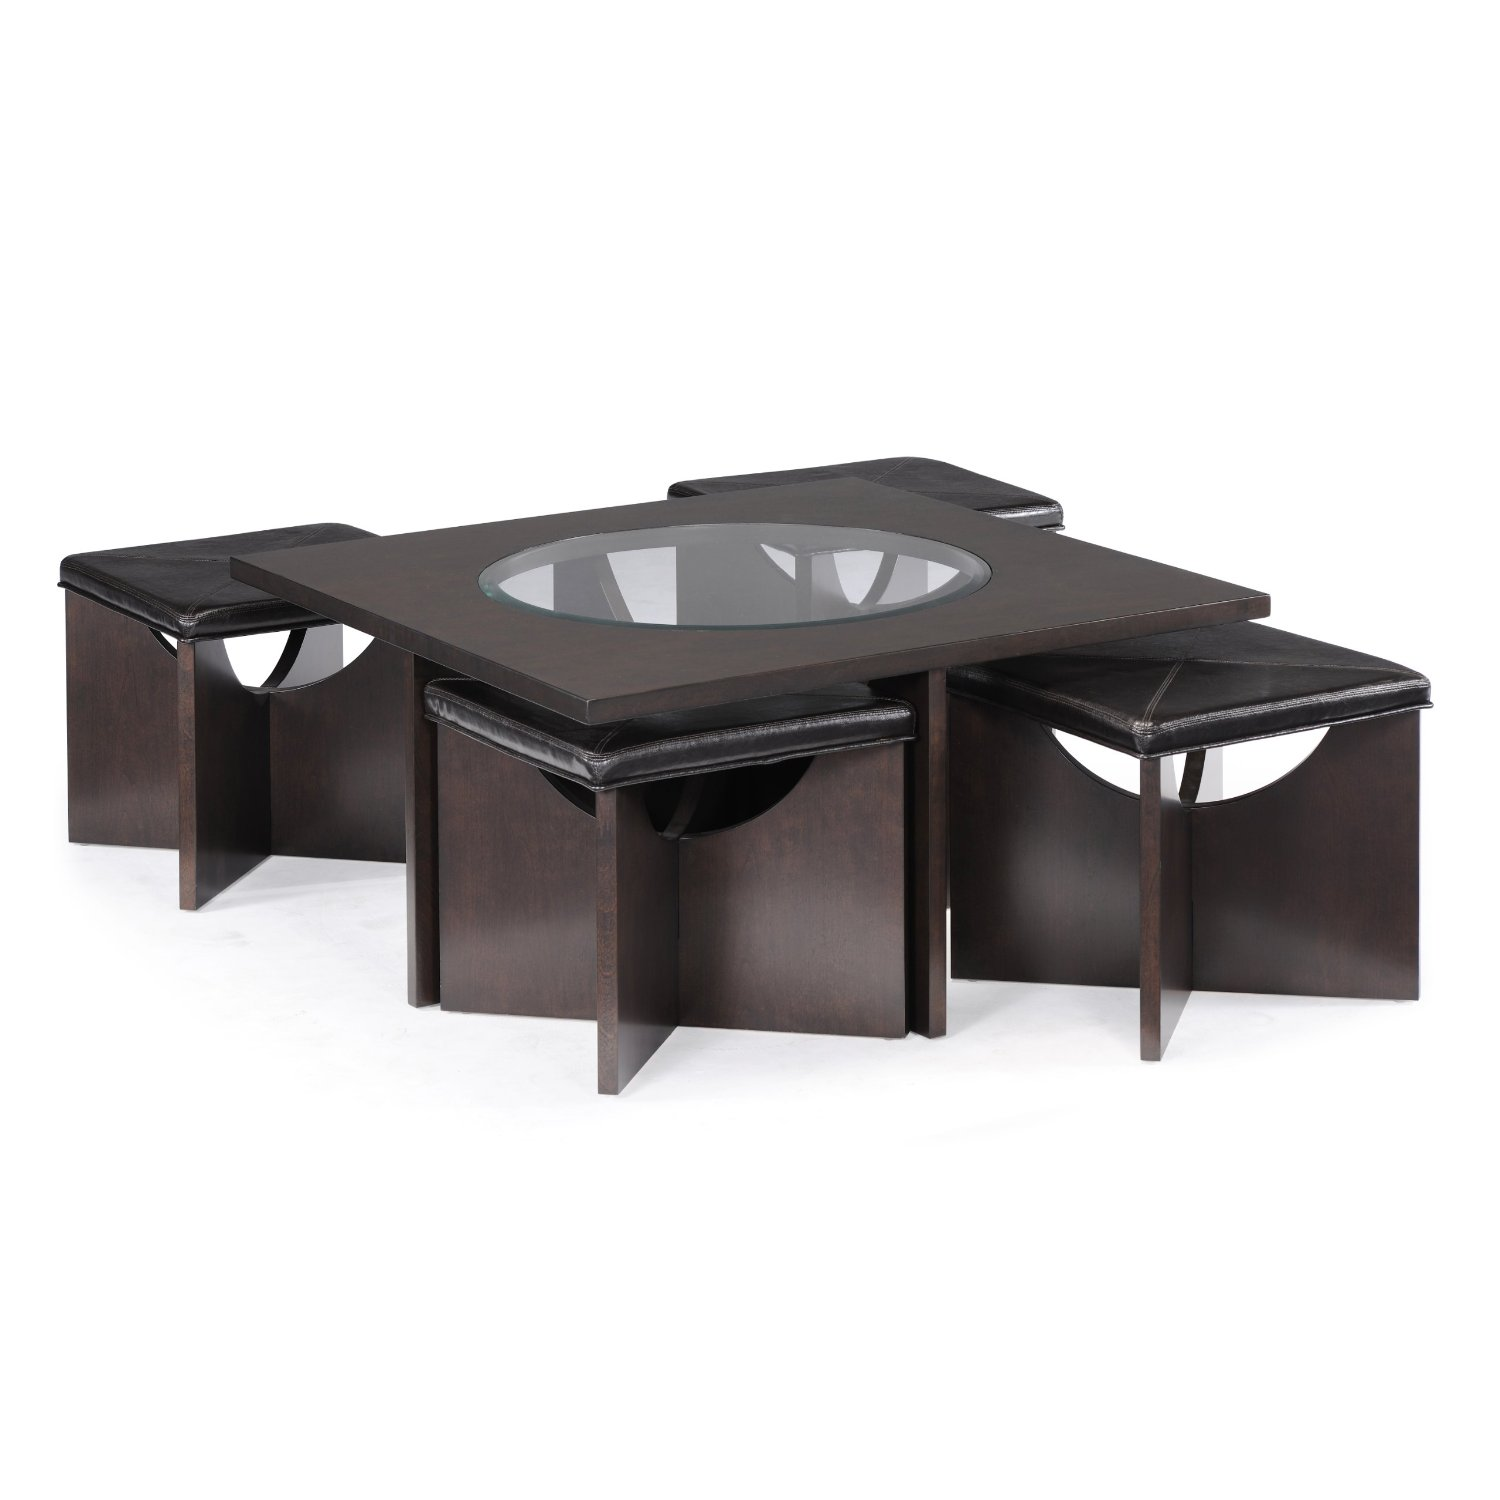 460 Magnussen Ozino Wood And Glass Square Cocktail Table With 4 S 866 594 6890